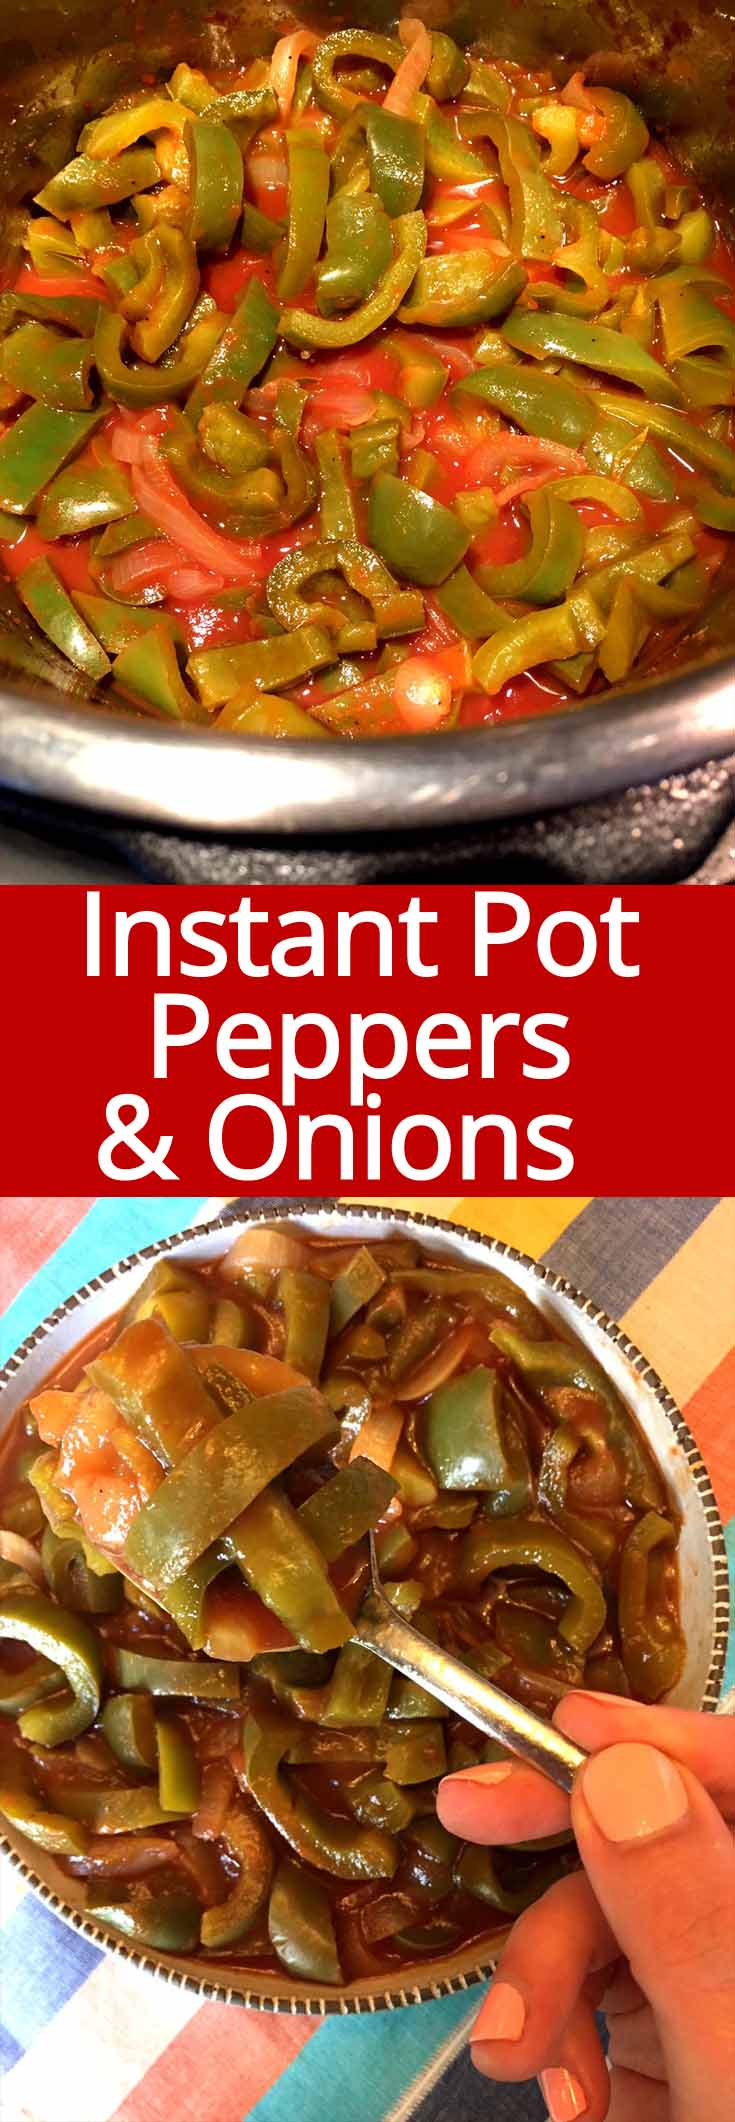 It's like having Chipotle fajitas in your Instant Pot! These Instant Pot peppers and onions are amazing!